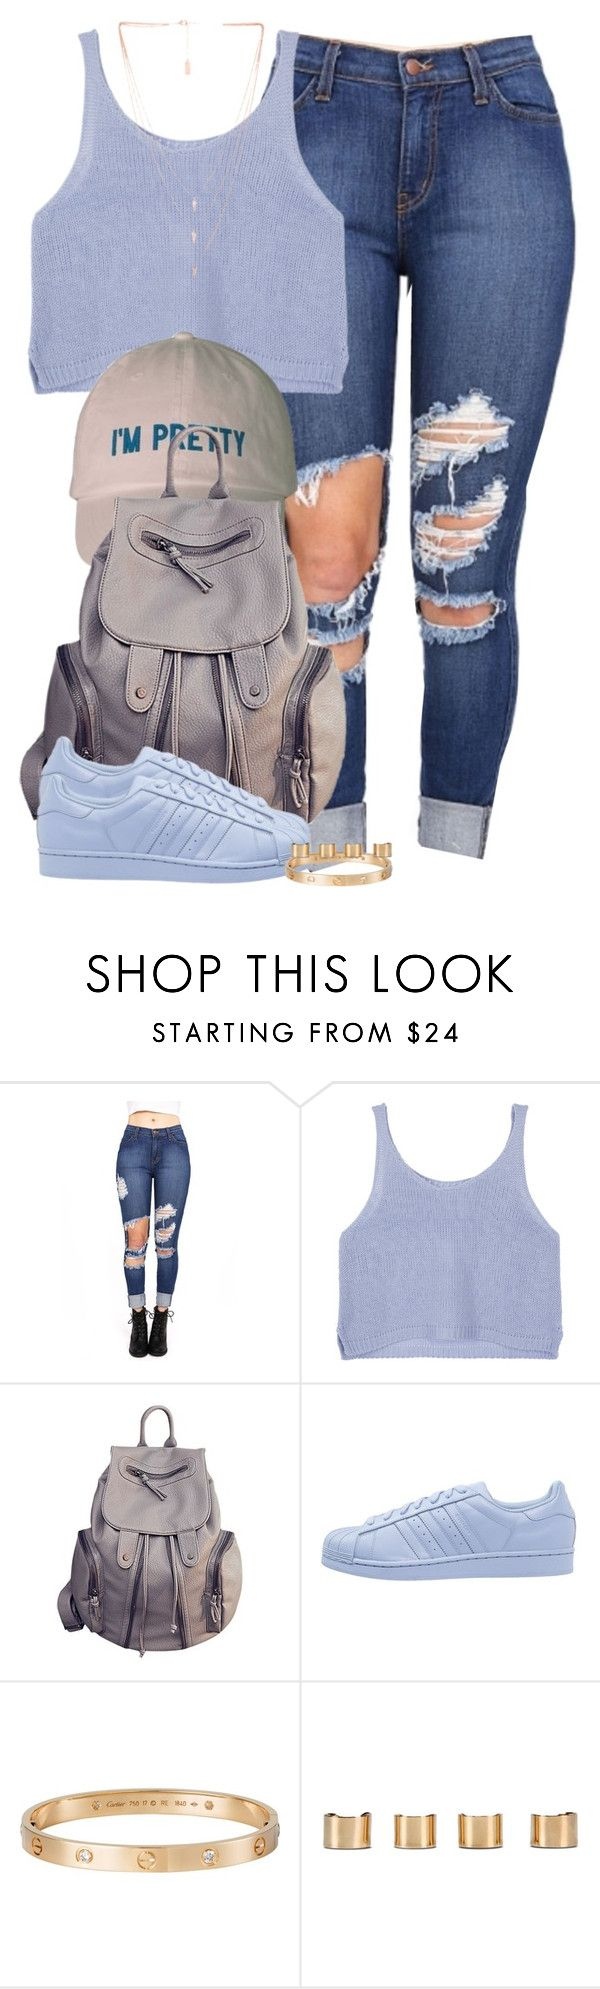 """""""I love you like XO."""" by cheerstostyle ❤ liked on Polyvore featuring adidas Originals, Cartier, Maison Margiela and Melanie Auld"""